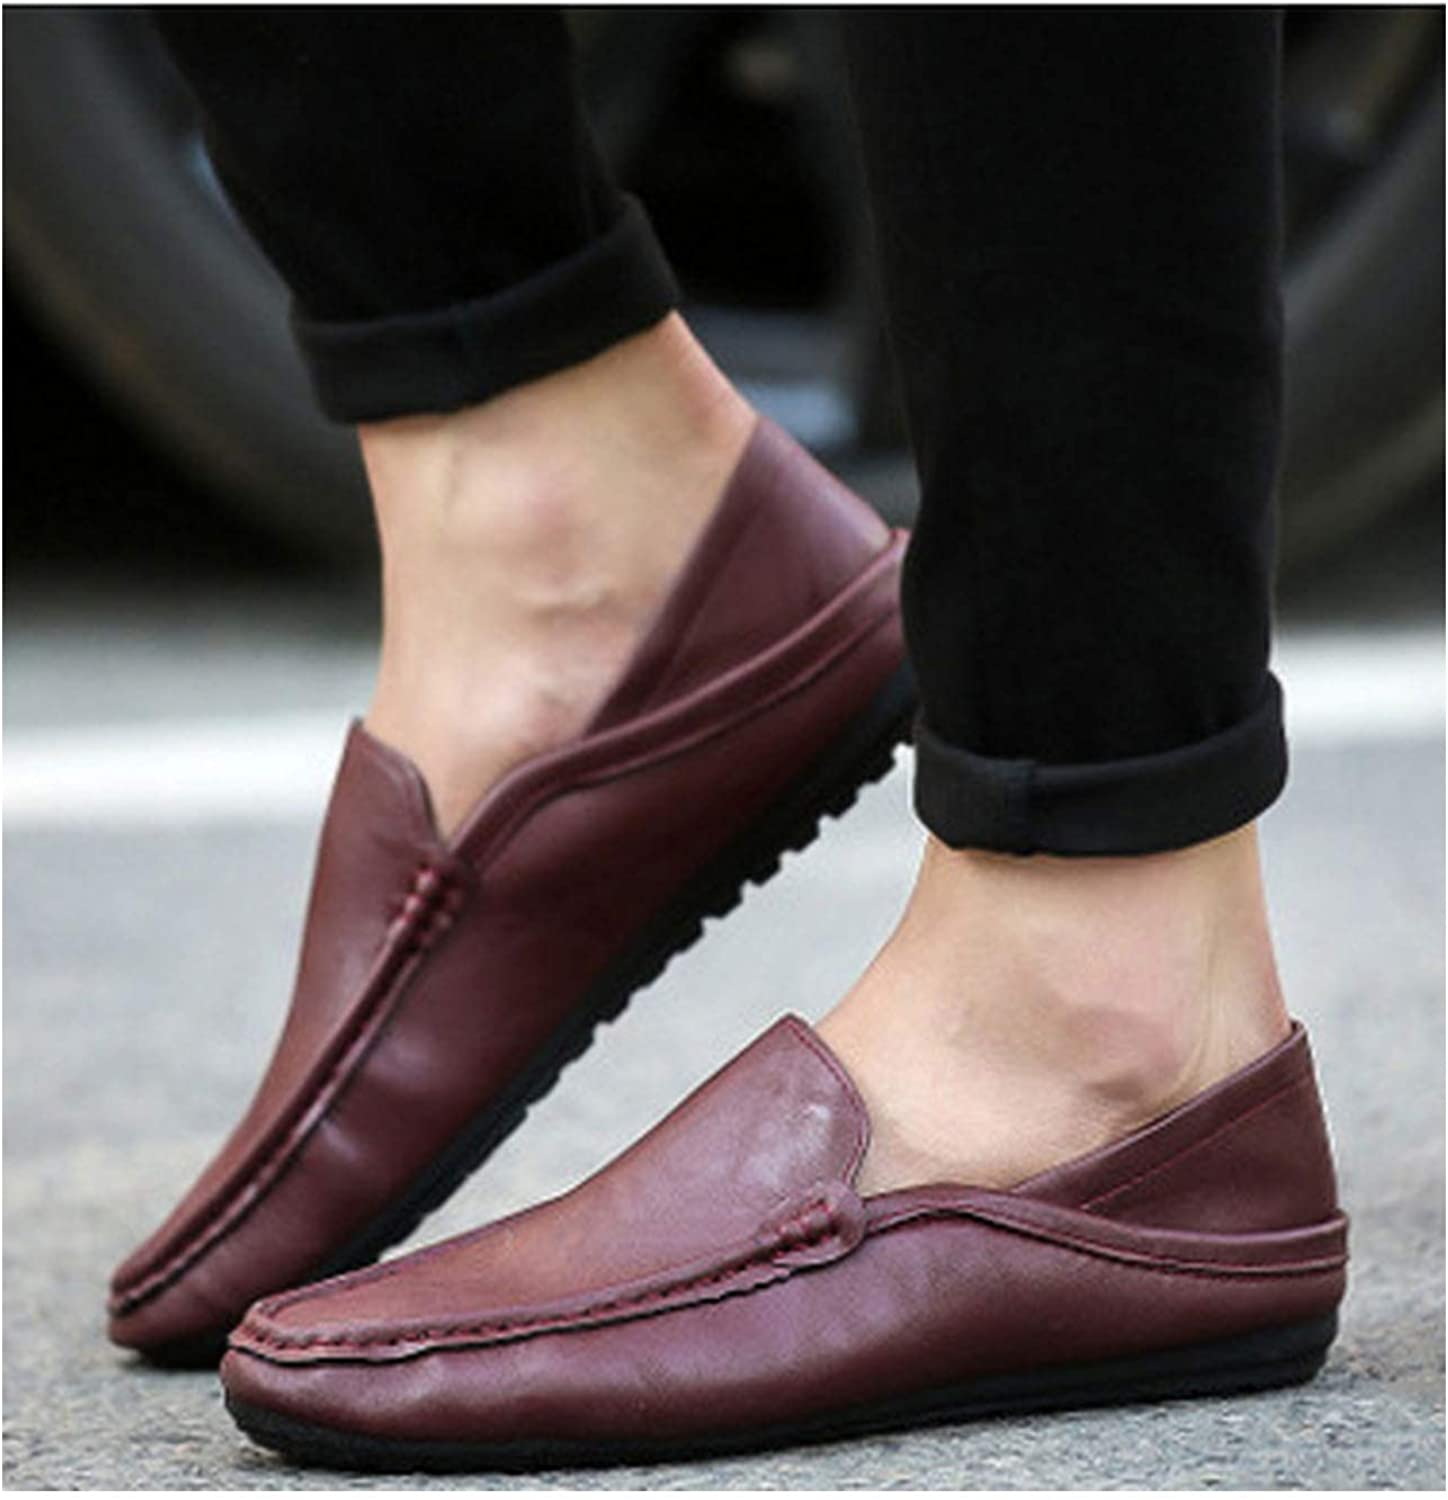 Pleasantlyday Men shoes Canvas Loafer shoes Boat shoes Peas shoes Slip On Flats Walk Drive Moccasins Breathable